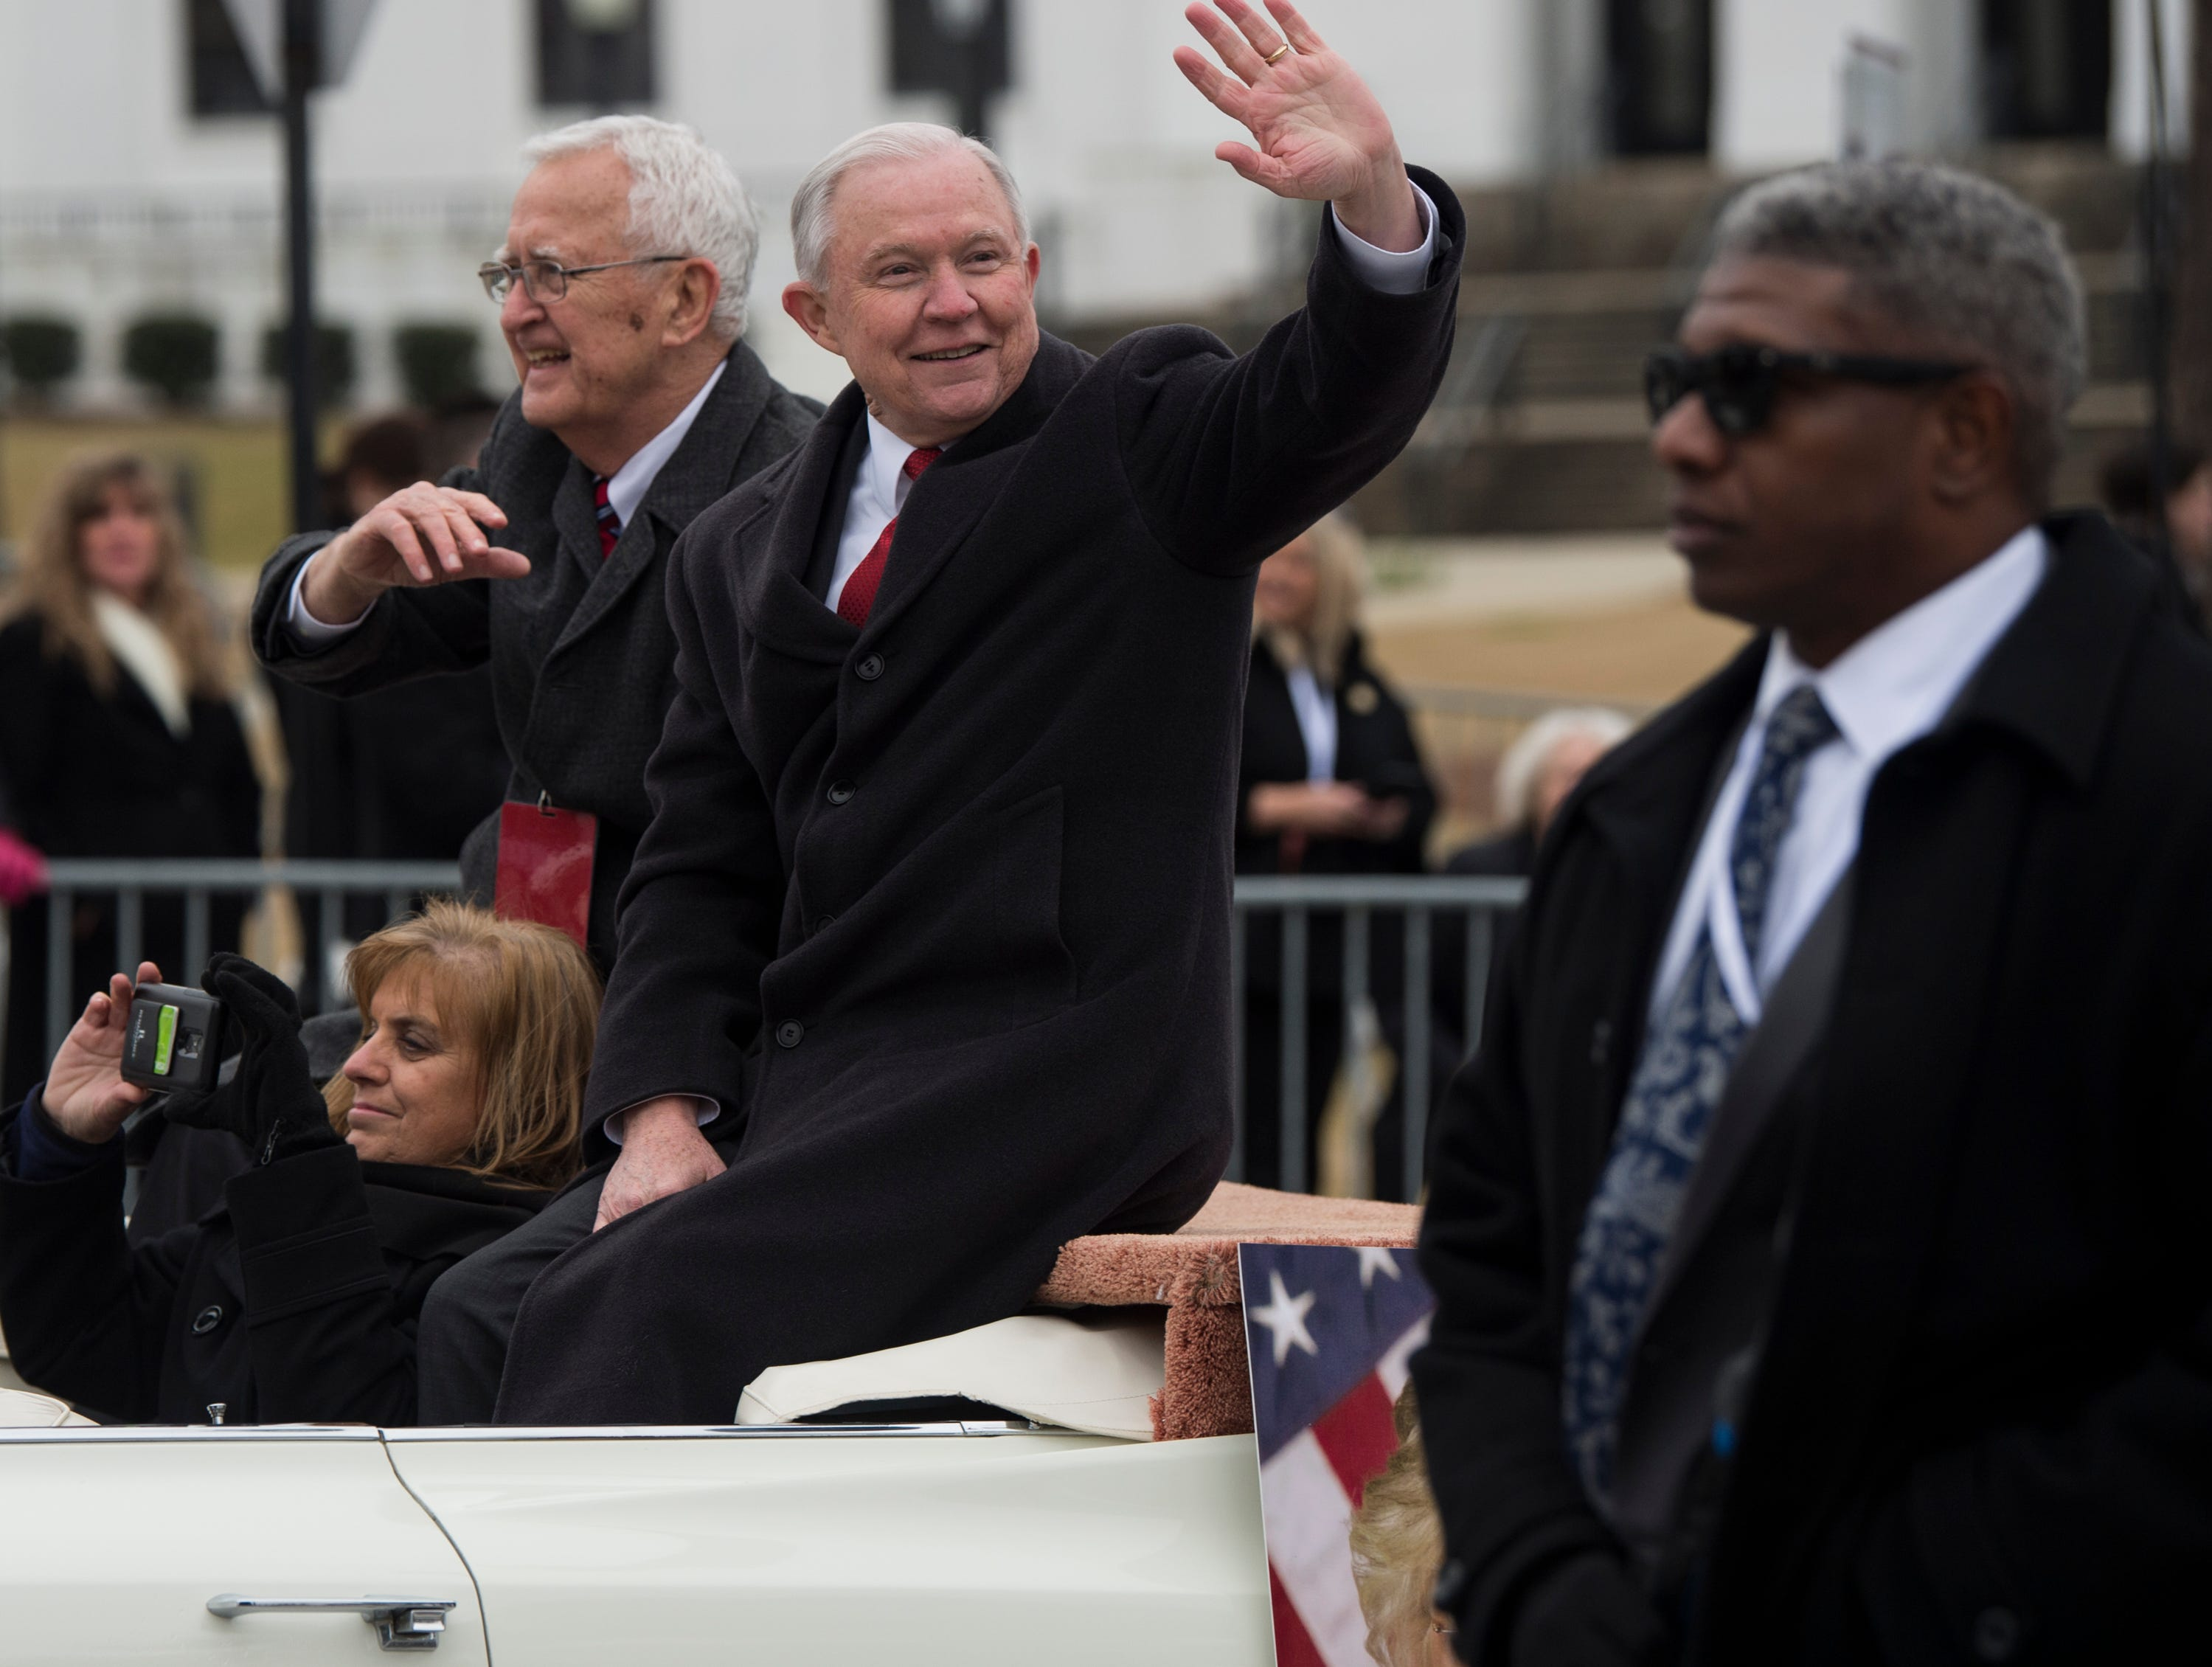 Former U.S. Attorney General Jeff Sessions waves to the crowd during the inauguration day parade in Montgomery, Ala., on Monday, Jan. 14, 2019.